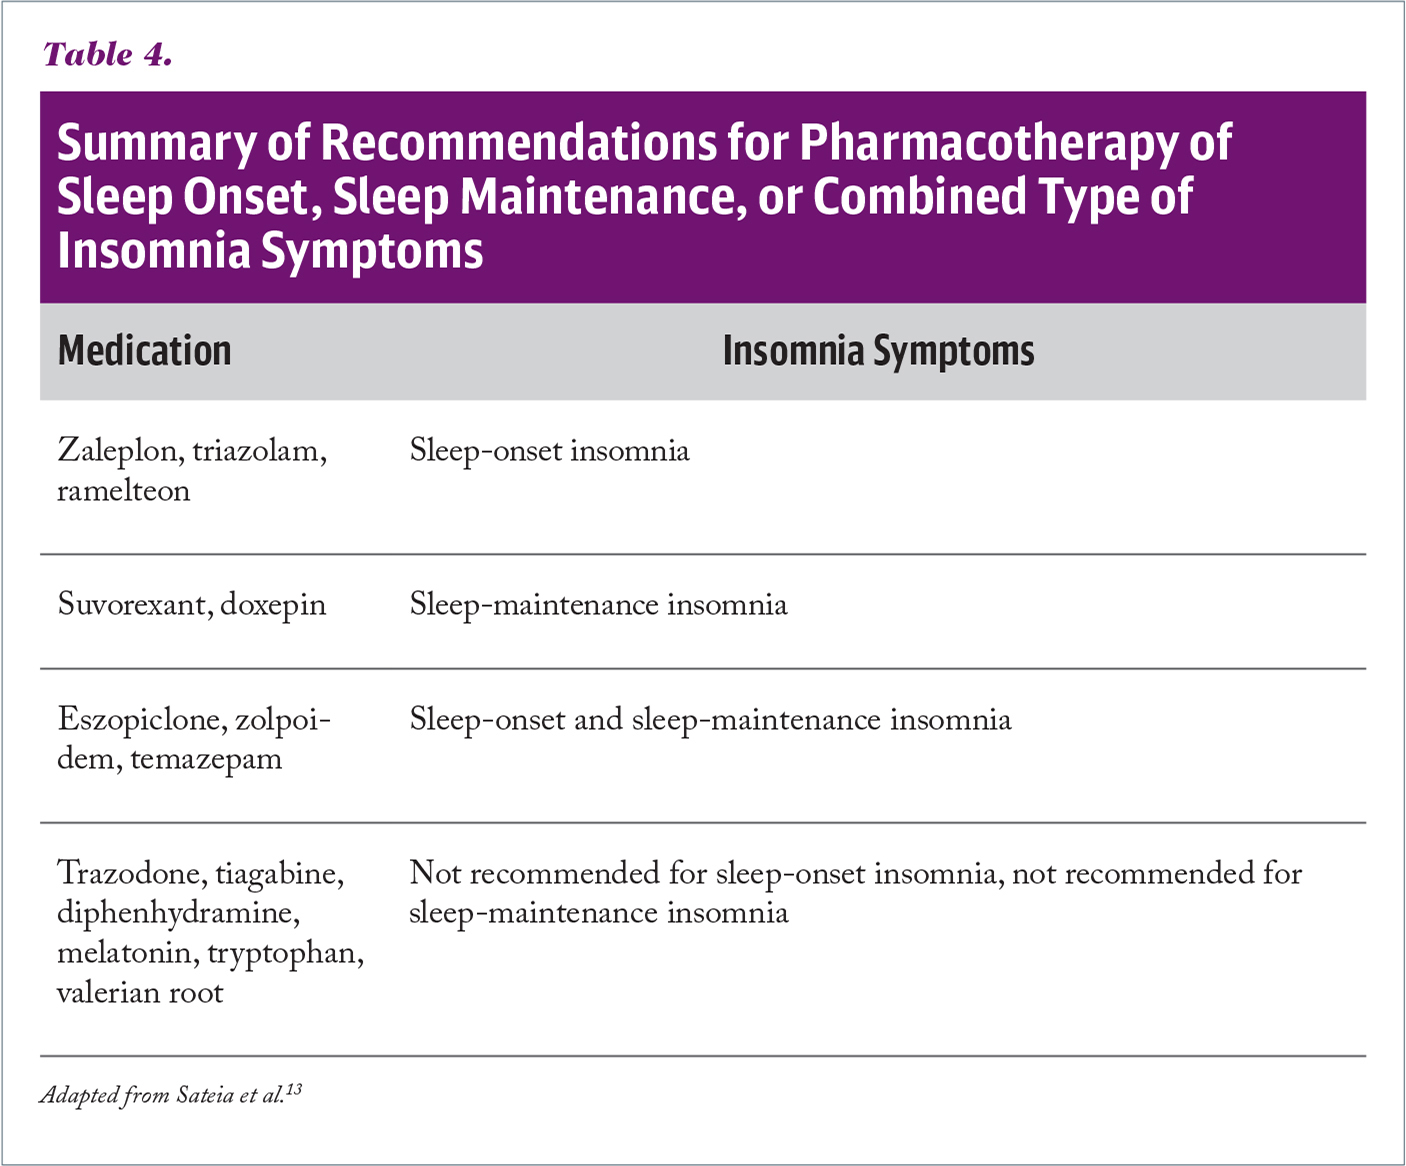 Summary of Recommendations for Pharmacotherapy of Sleep Onset, Sleep Maintenance, or Combined Type of Insomnia Symptoms